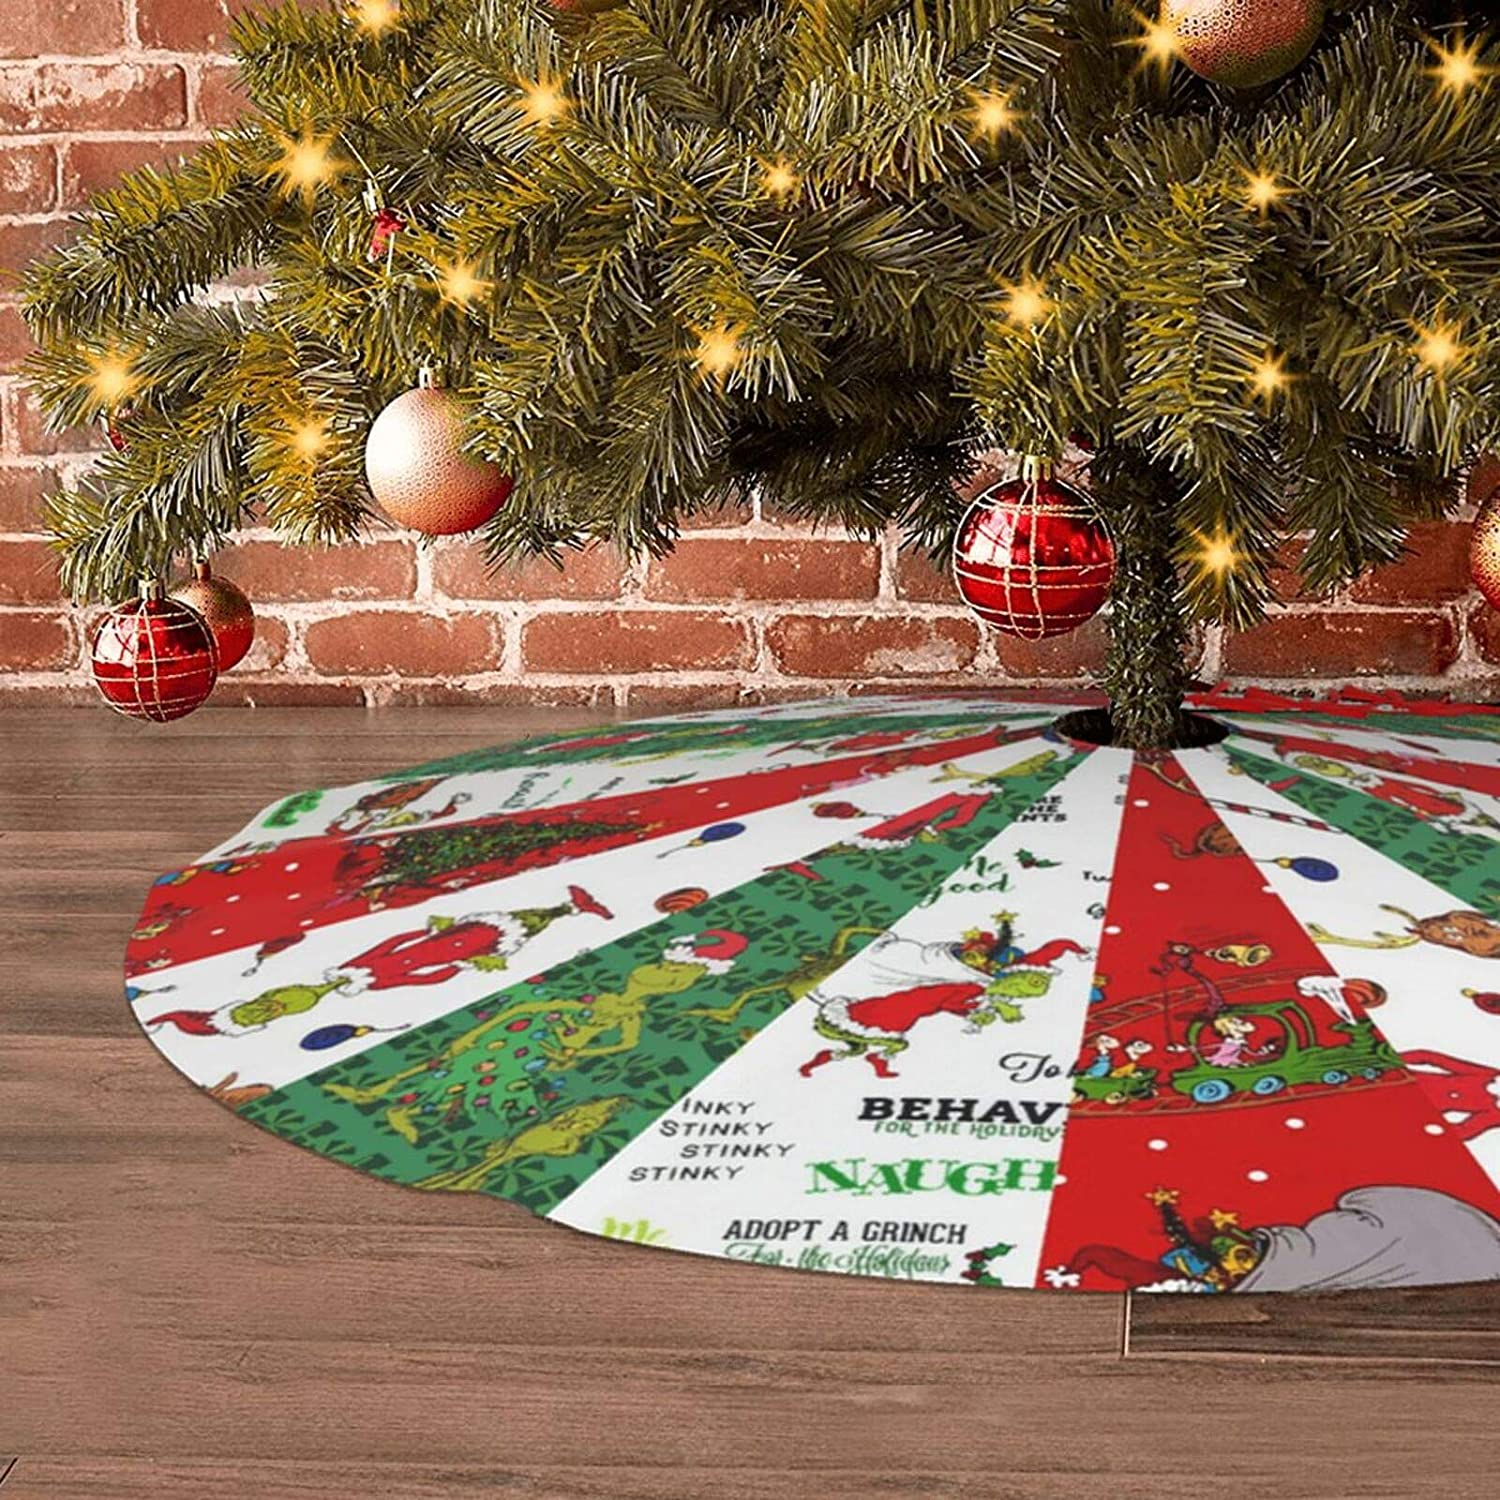 The Grinch Stole Christmas Novelty Christmas Tree Skirt Plush Tree Stand Mat Cover for Halloween Decor Holiday Party Decor 36